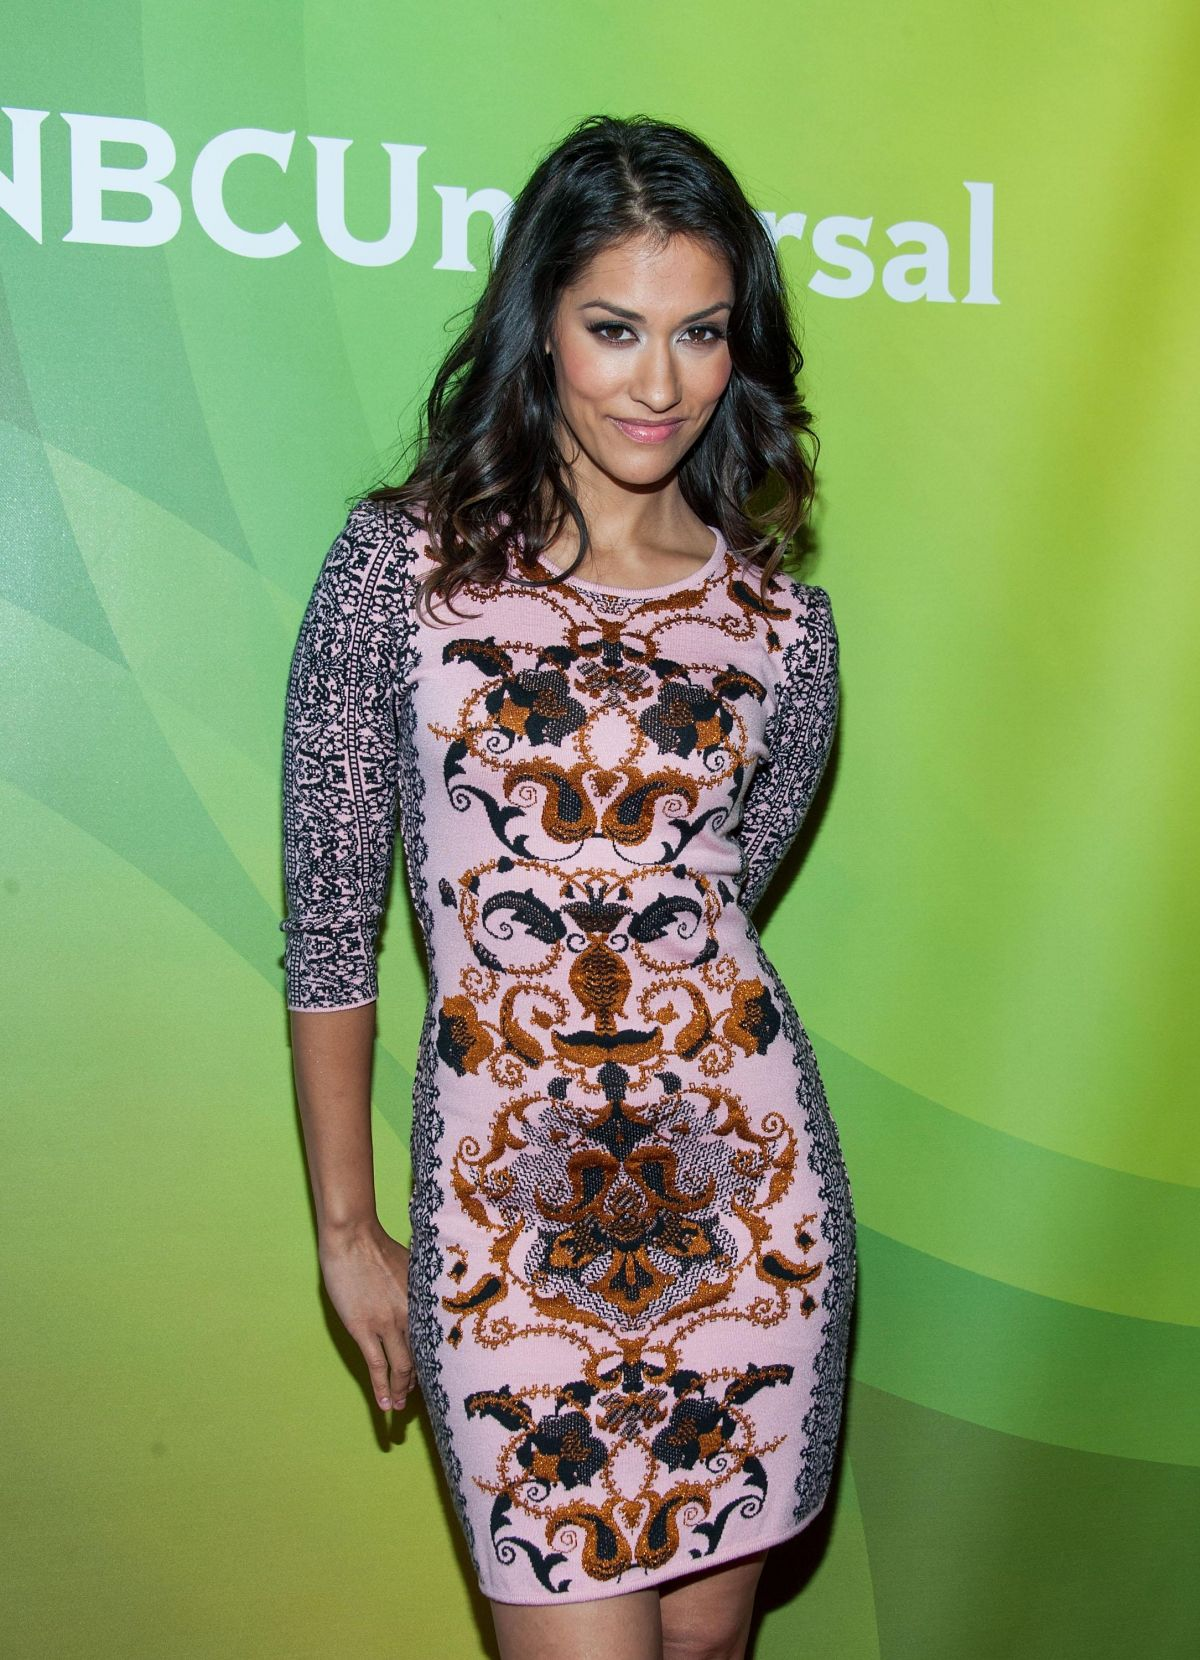 janina gavankar l wordjanina gavankar instagram, janina gavankar wikipedia, janina gavankar films, janina gavankar l word, janina gavankar interview, janina gavankar fansite, janina gavankar net worth, janina gavankar imdb, janina gavankar bellazon, janina gavankar height, janina gavankar 2016, janina gavankar sleepy hollow, janina gavankar tumblr, janina gavankar sister, janina gavankar, janina gavankar game of thrones, janina gavankar true blood, janina gavankar vampire diaries, janina gavankar twitter, janina gavankar bio